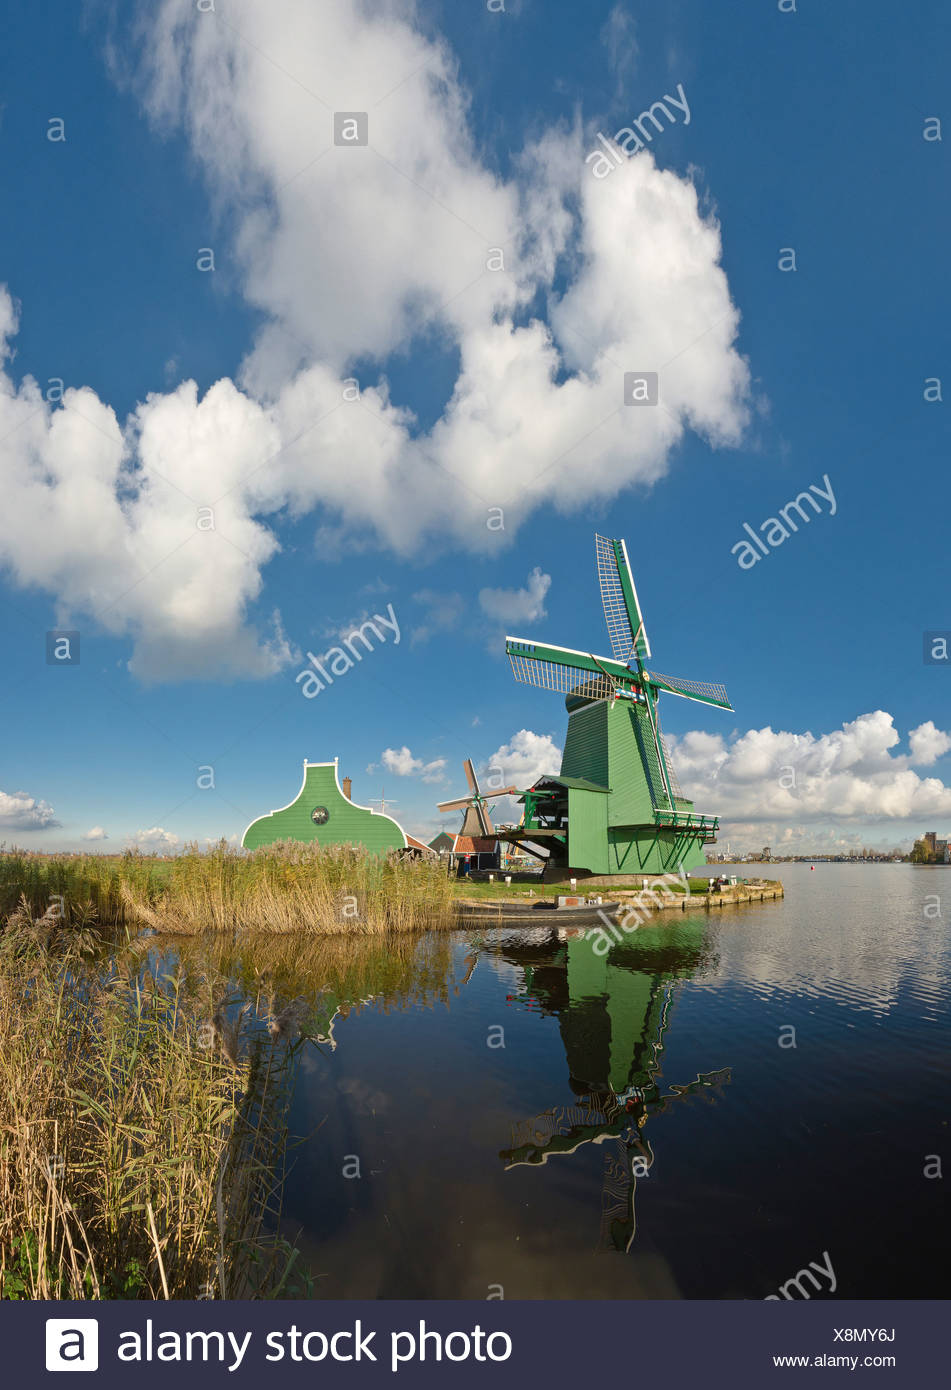 Holland, Netherlands, Europe, Zaandam, Wooden, windmill, water, winter, clouds, reflections, - Stock Image